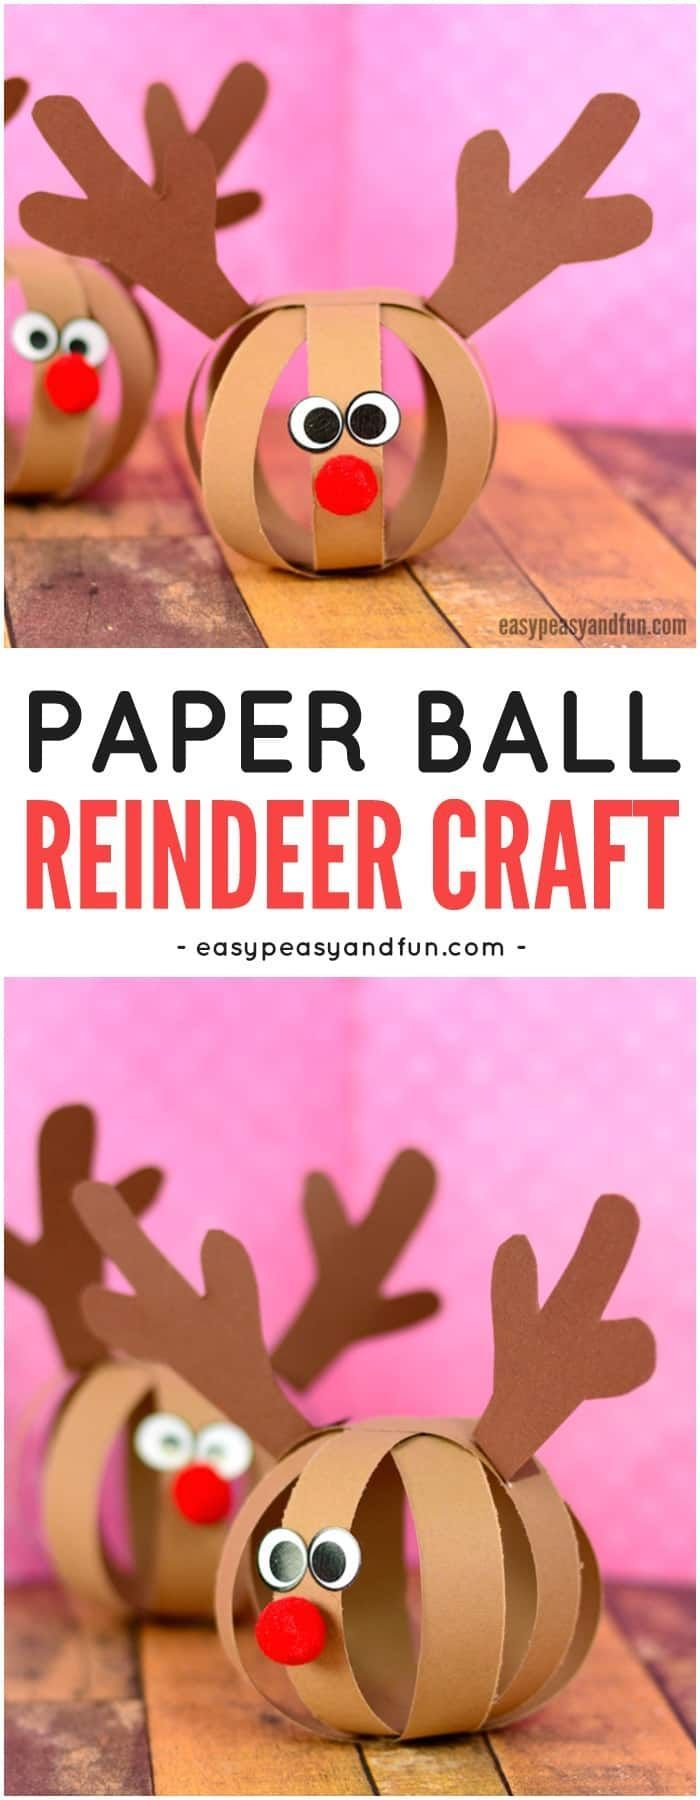 Adorable Paper Ball Reindeer Craft. Perfect Christmas Craft Activity for Kids to Make.